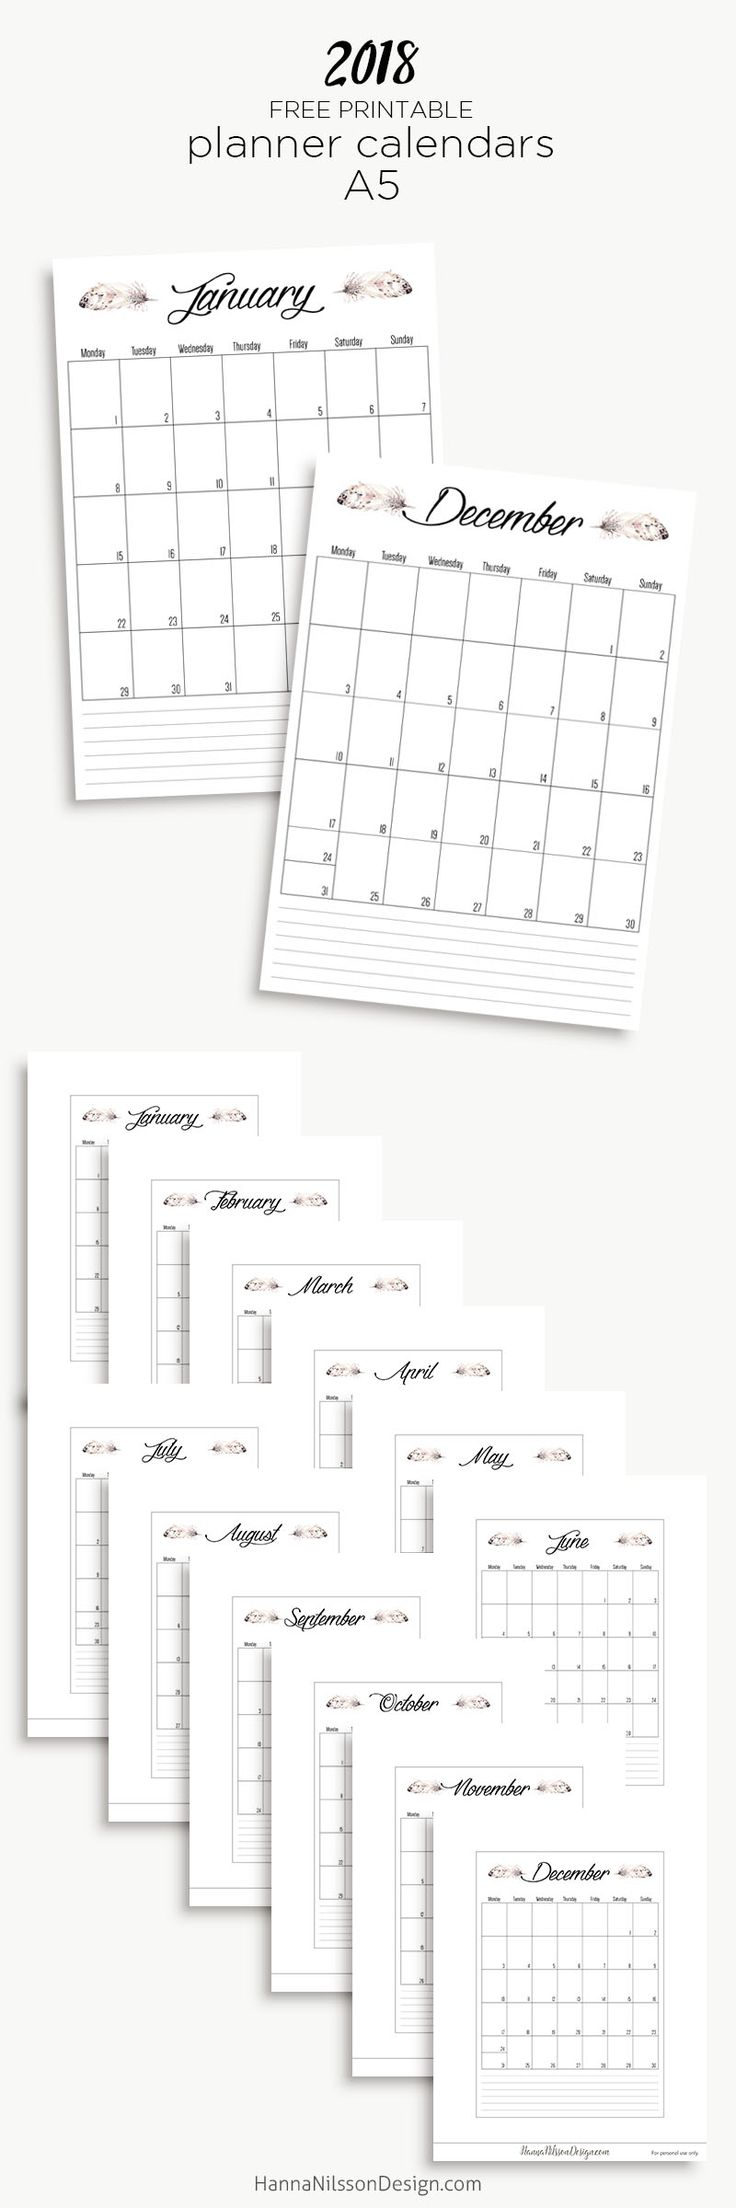 2018 Free printable yearly calendar | planner inserts | filofax printable | monthly planner pages | #planner #printables #calendar